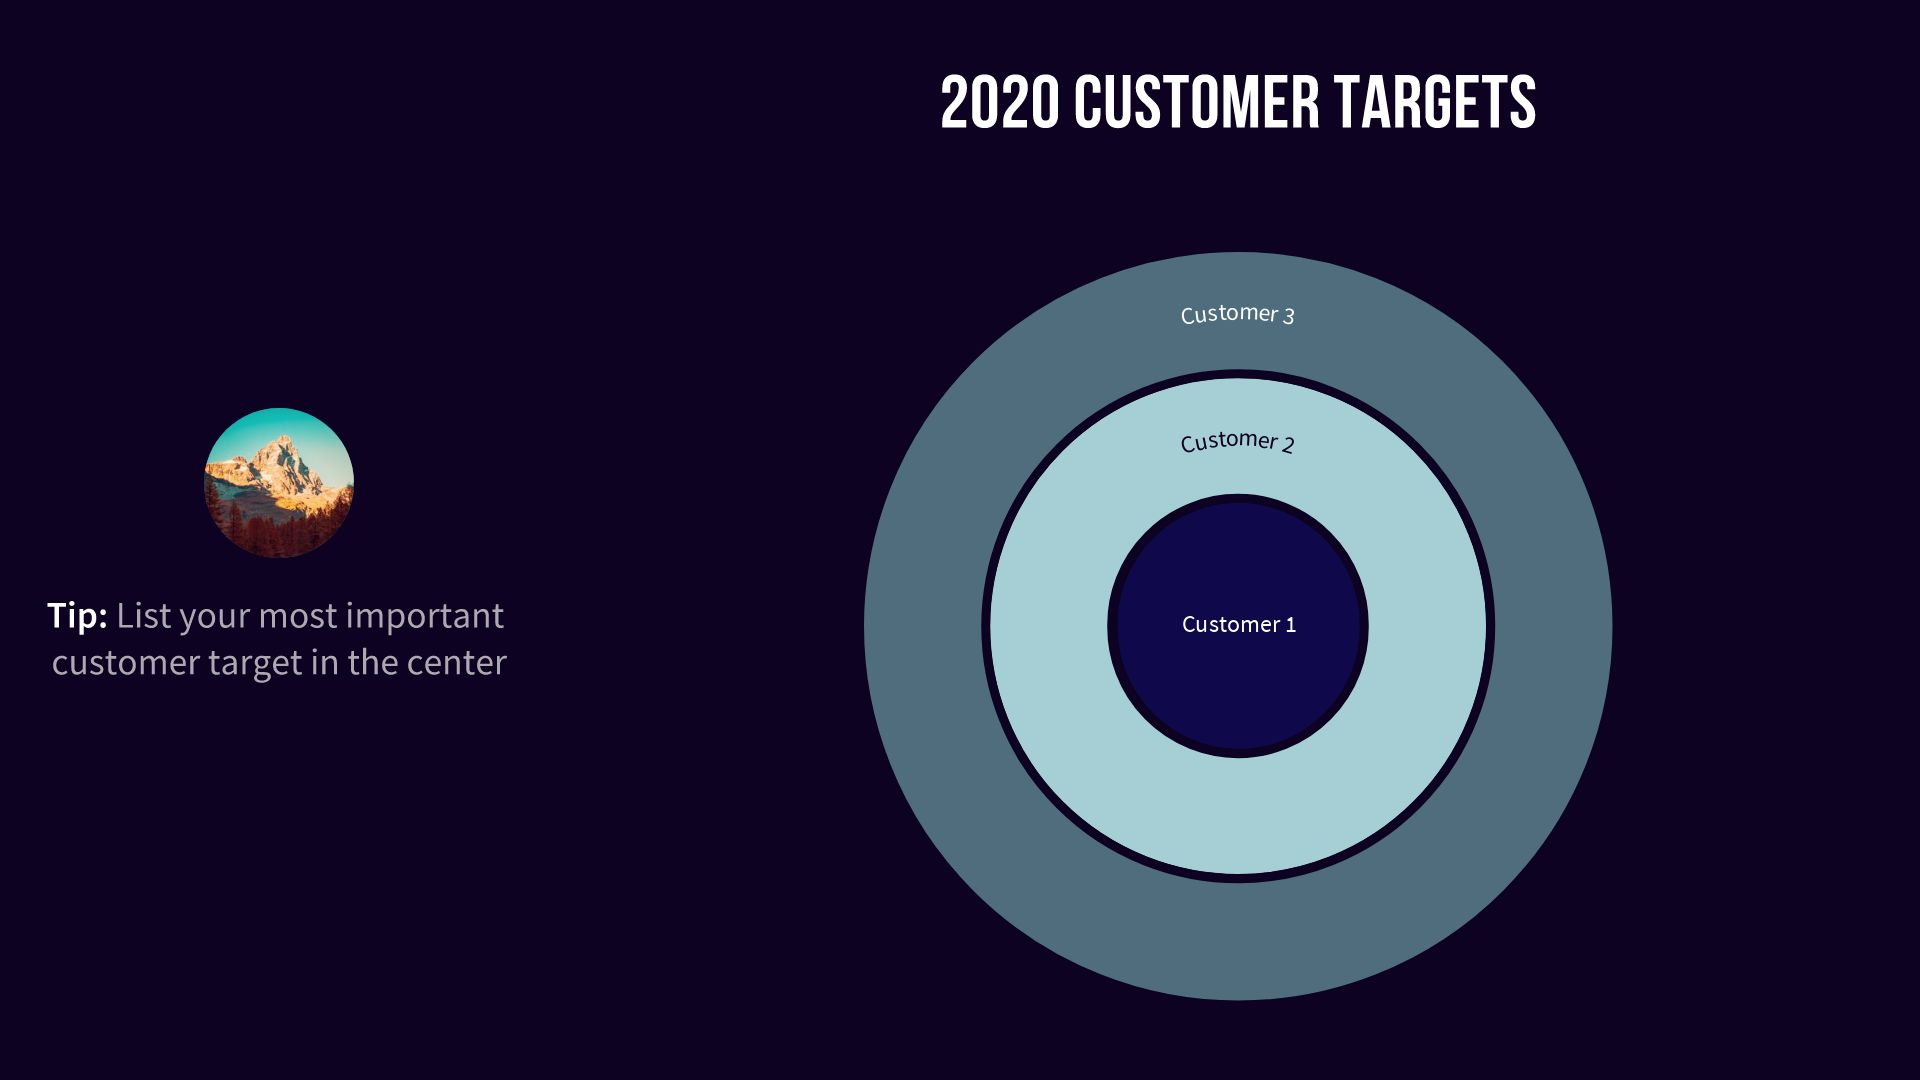 Customer Targets